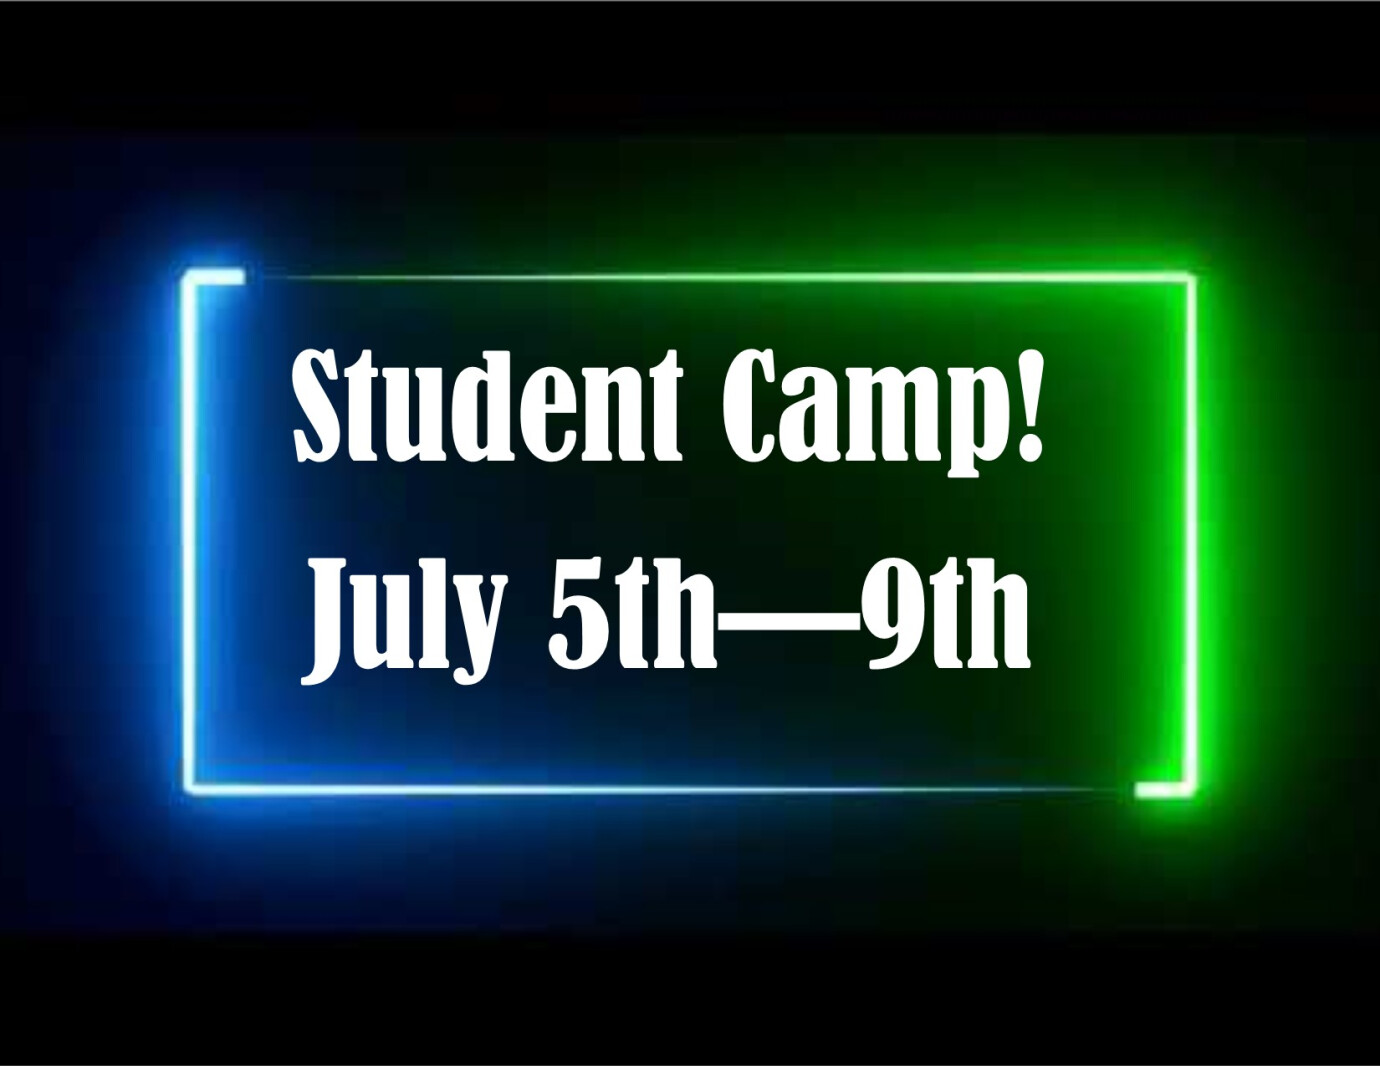 Youth Camp!